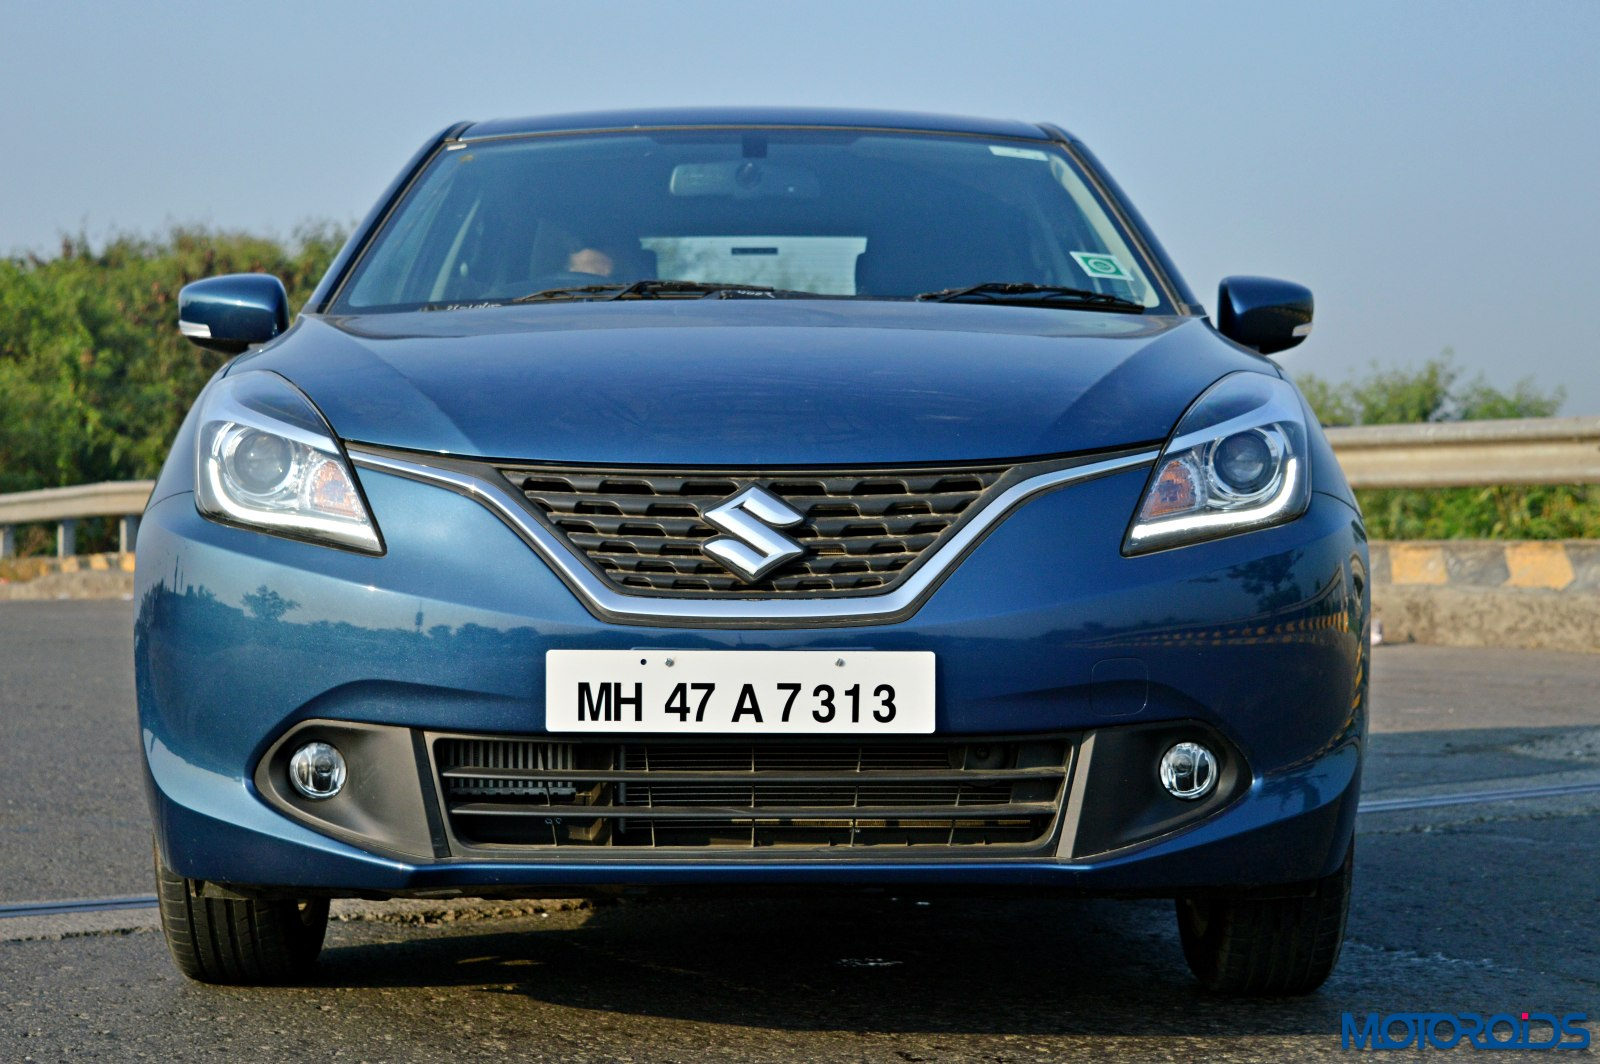 2015 maruti suzuki baleno head on view. Black Bedroom Furniture Sets. Home Design Ideas